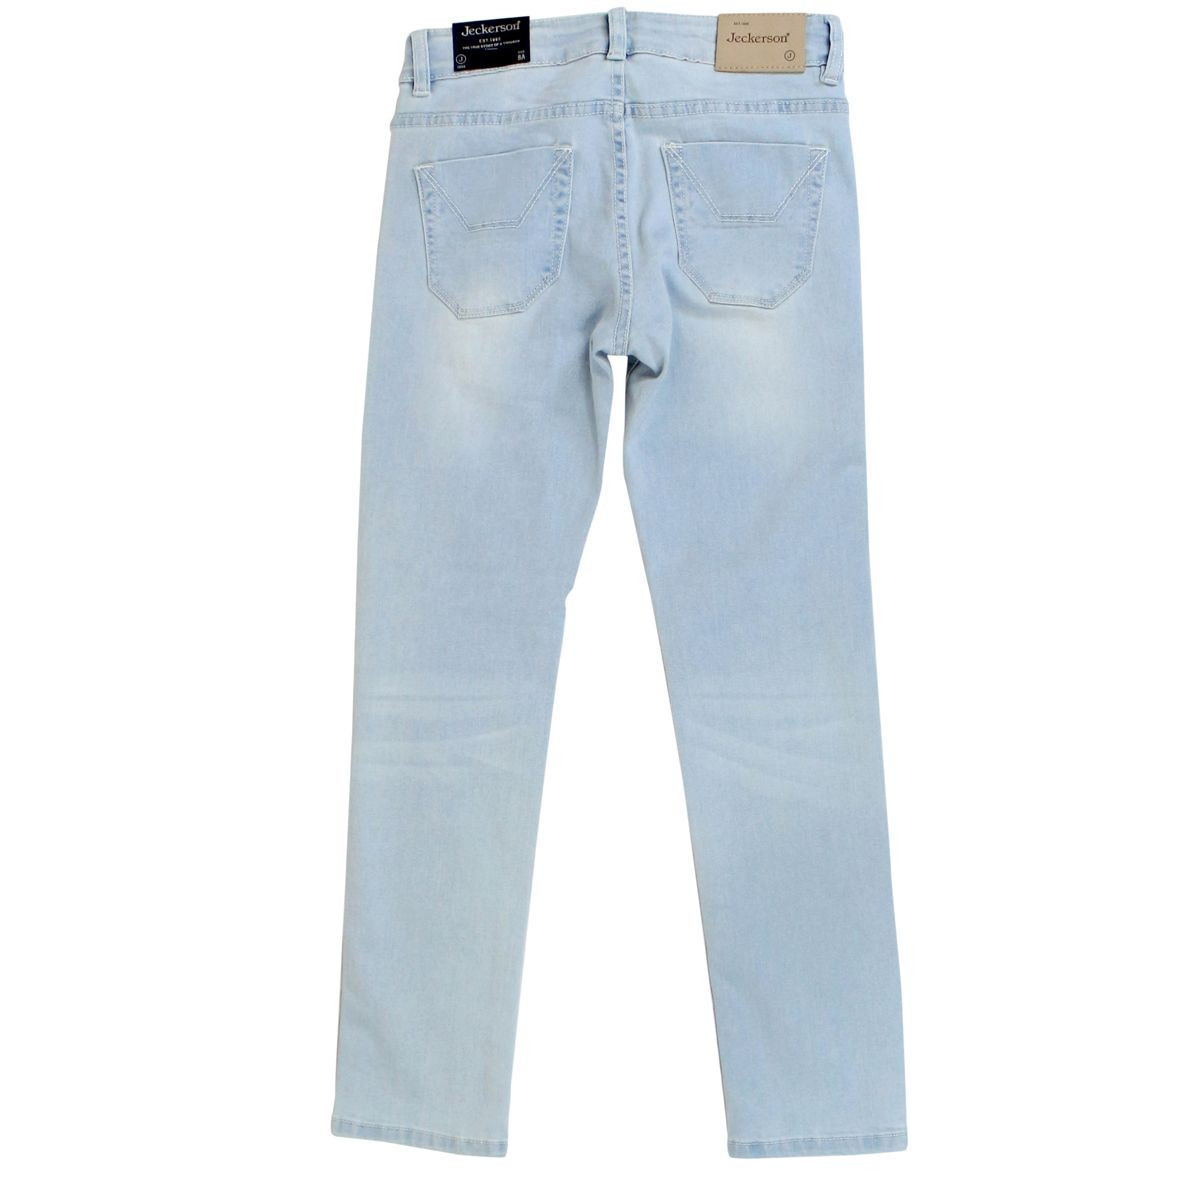 5-pocket stretch trousers with maxi patches Light denim Jeckerson